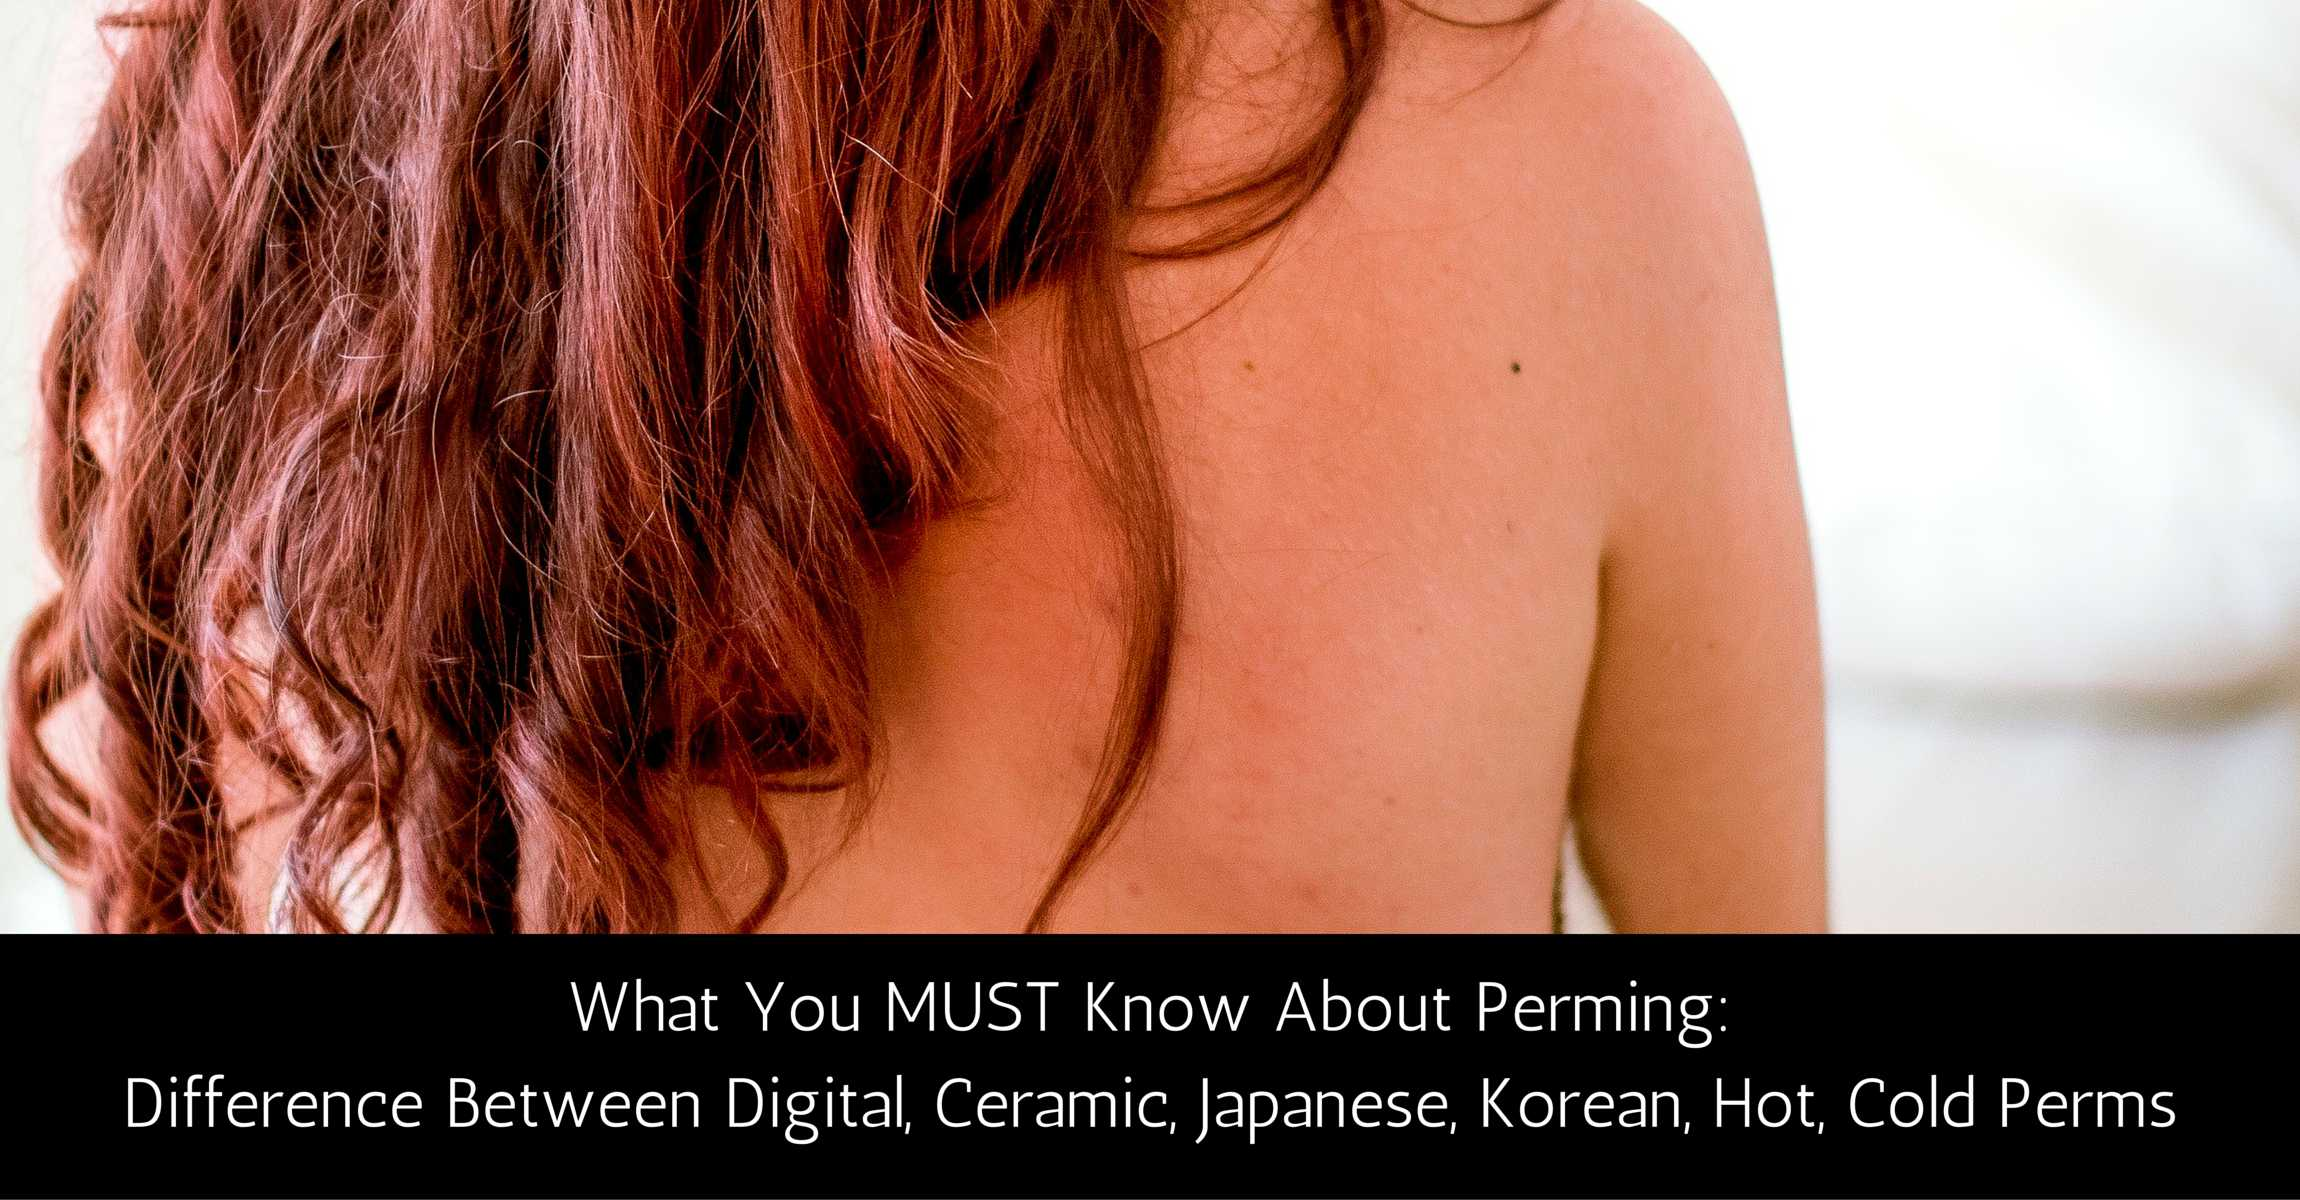 Magic straight perm vs keratin - Digital Vs Ceramic Vs Japanese Vs Korean Perms What You Must Know About Perms